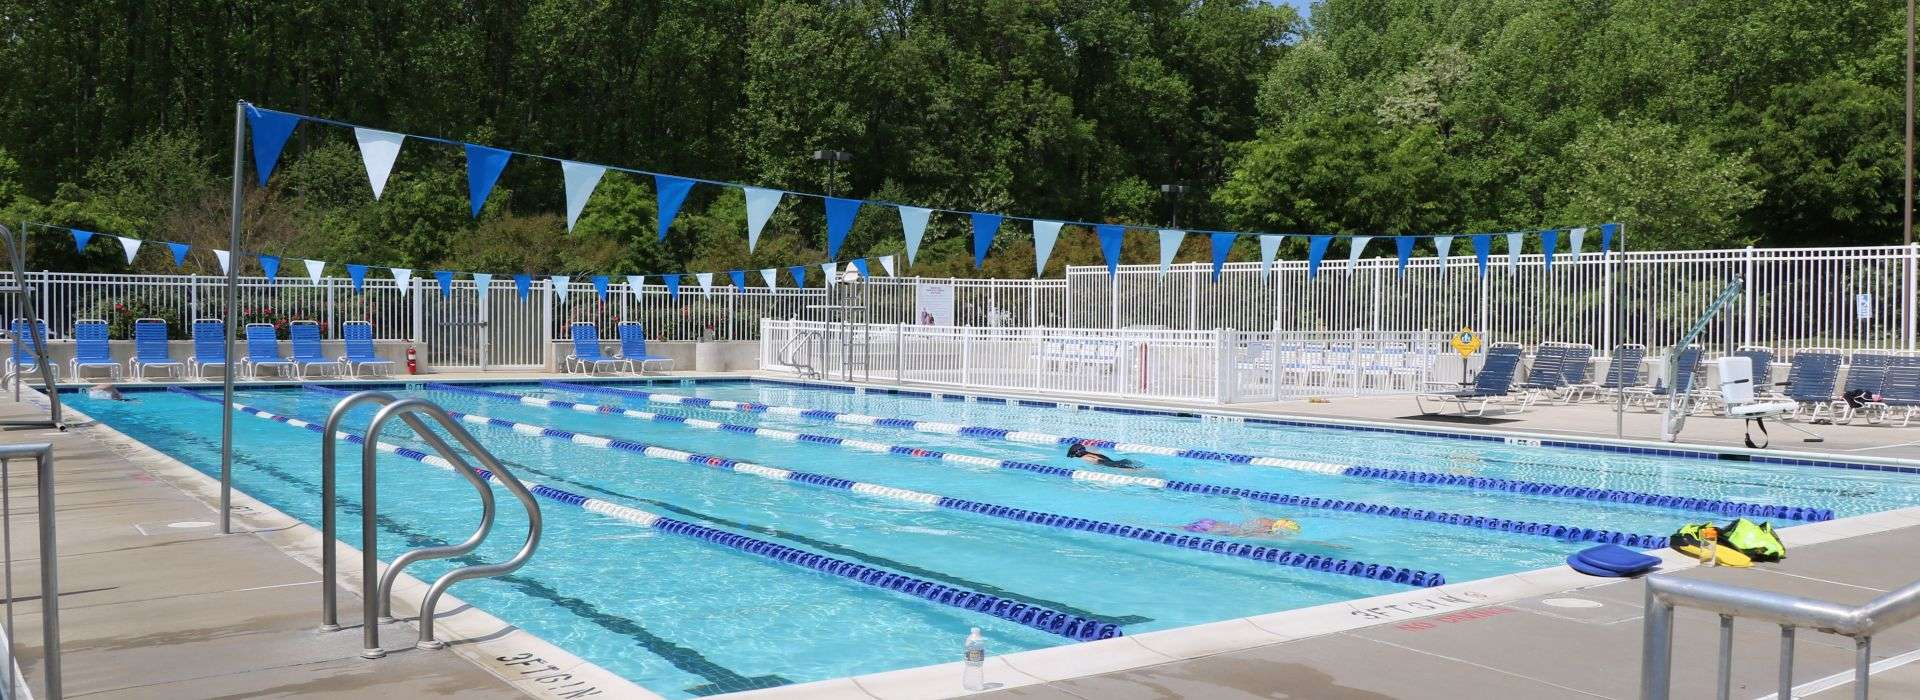 Amenities   The Y in Central Maryland